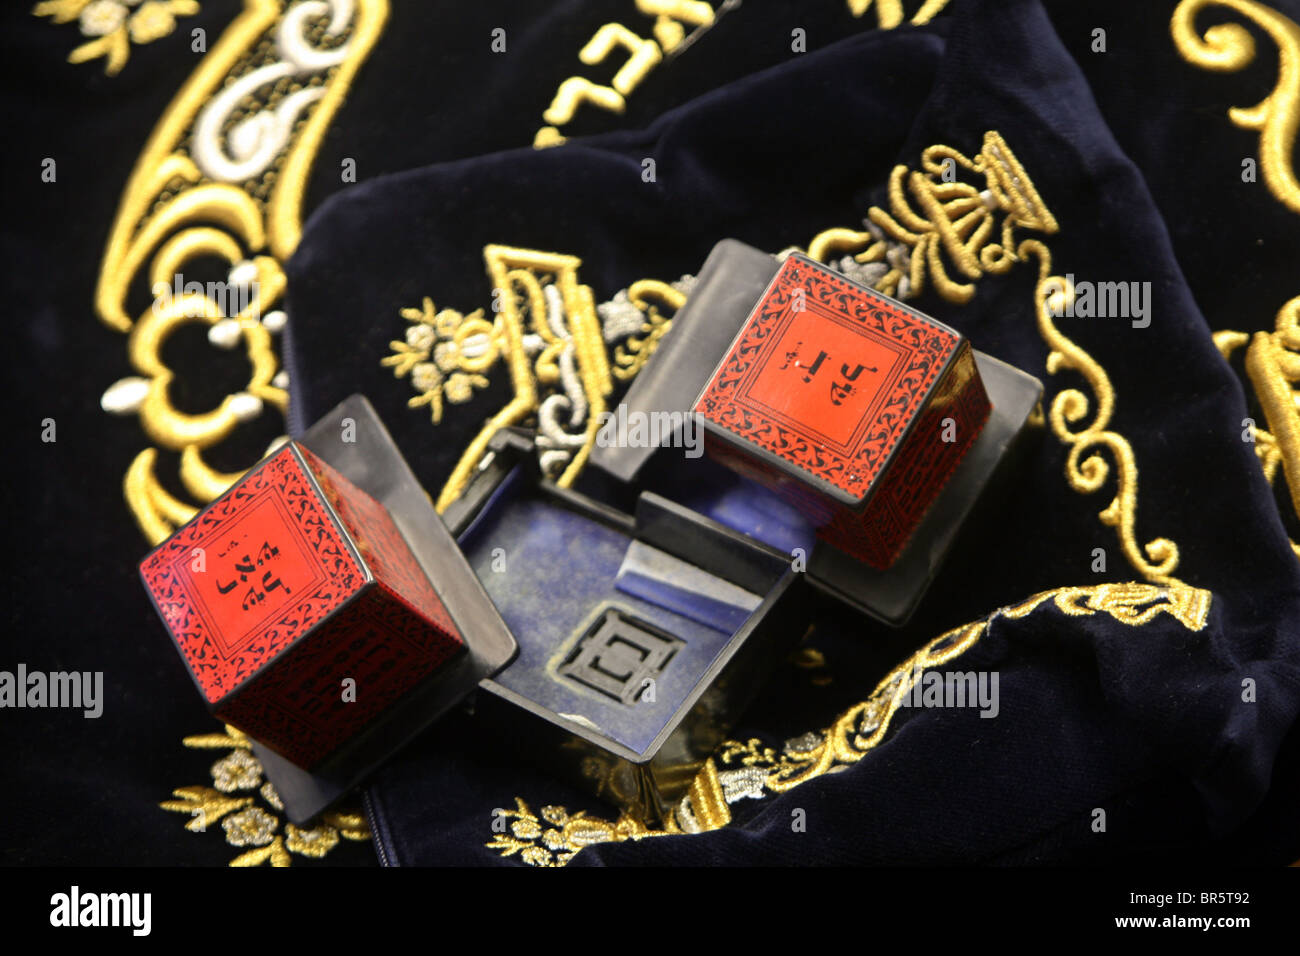 Two Tefillin cases on top of a velvet case used to protect the Tallit and siddur (prayer book containing daily prayers). - Stock Image